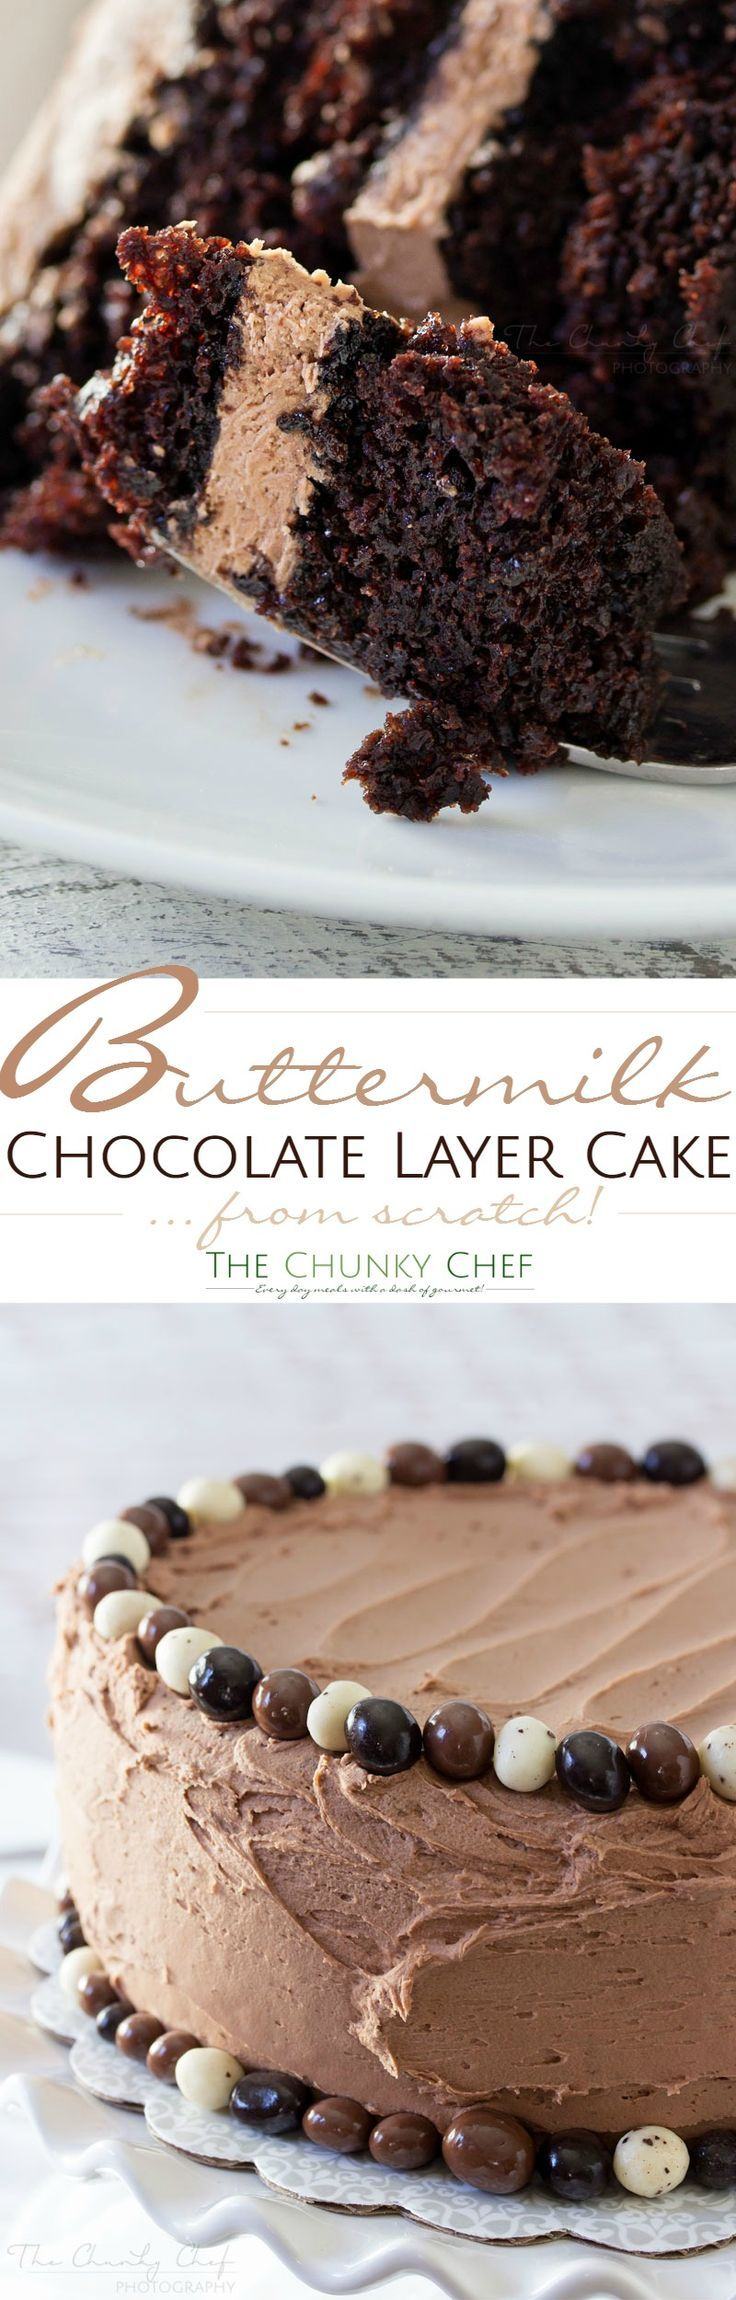 Buttermilk-Chocolate-Layer-Cake | The ULTIMATE soft and fluffy chocolate layer cake. Made from scratch with buttermilk, and slathered in an ultra creamy buttercream frosting! | http://thechunkychef.com